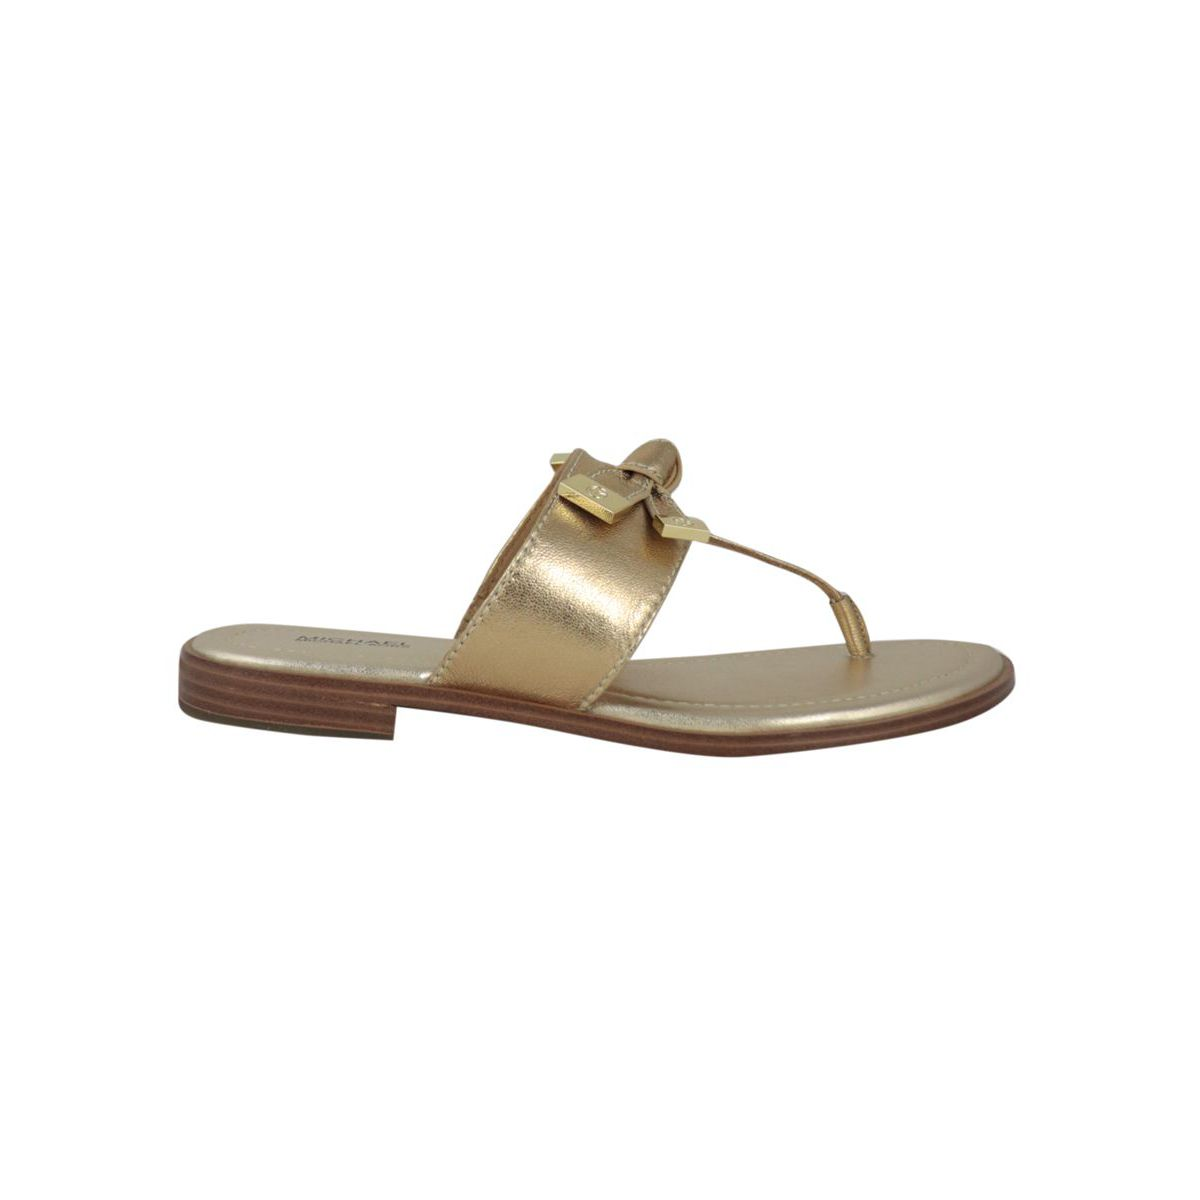 Flip flop sandal in laminated leather with bow Gold Michael Kors